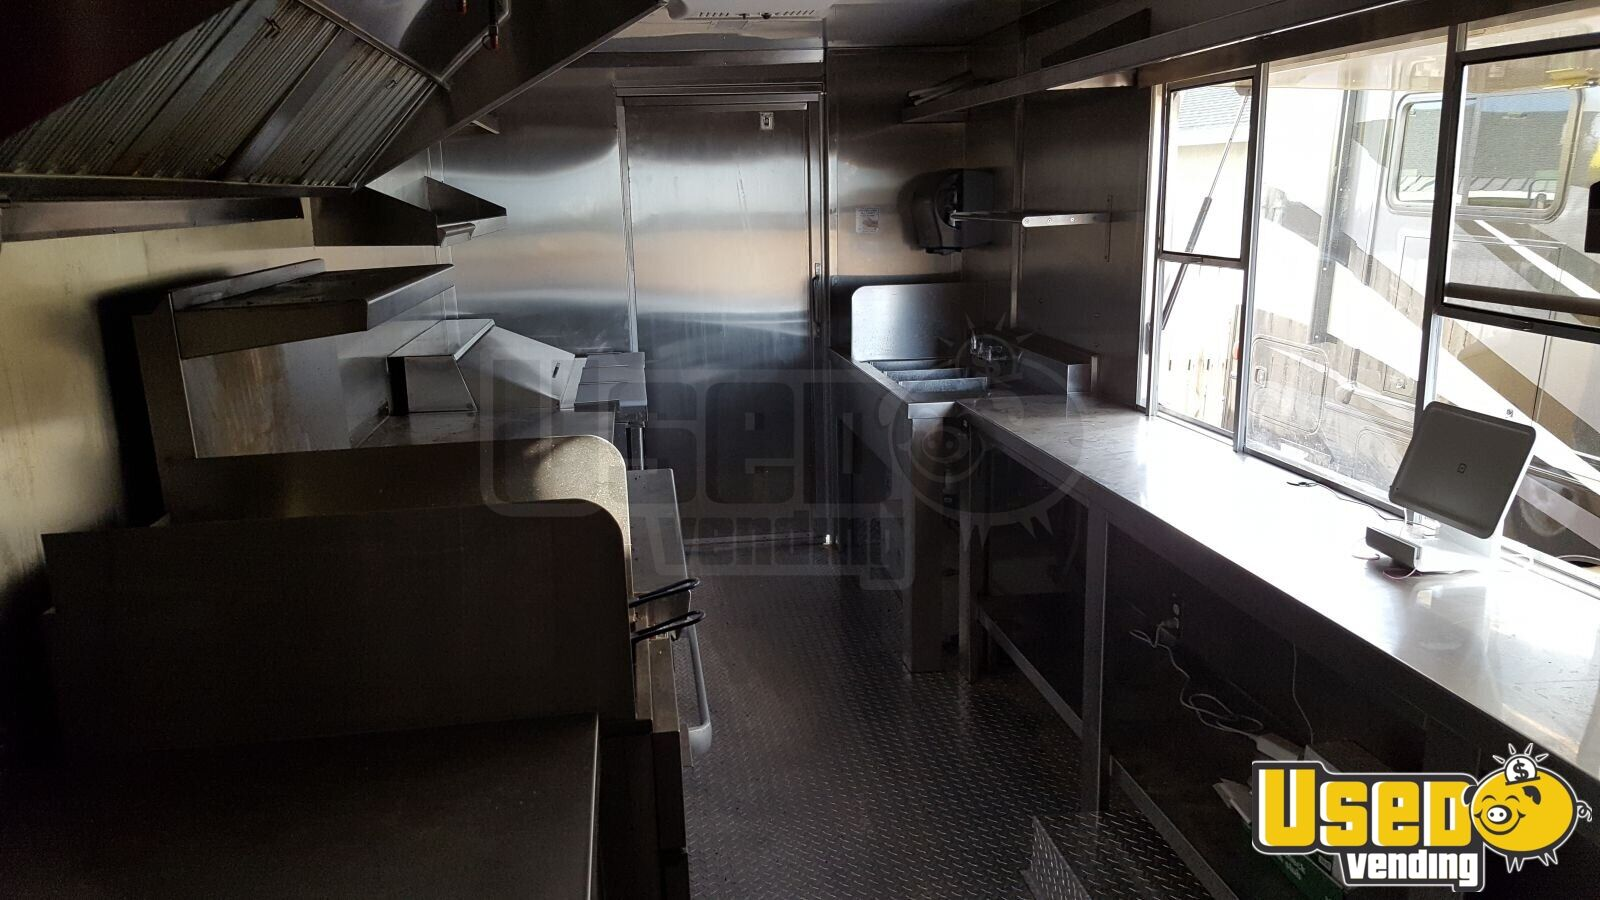 2000 Chevy Workhorse All-purpose Food Truck Concession Window Arizona Gas Engine for Sale - 3